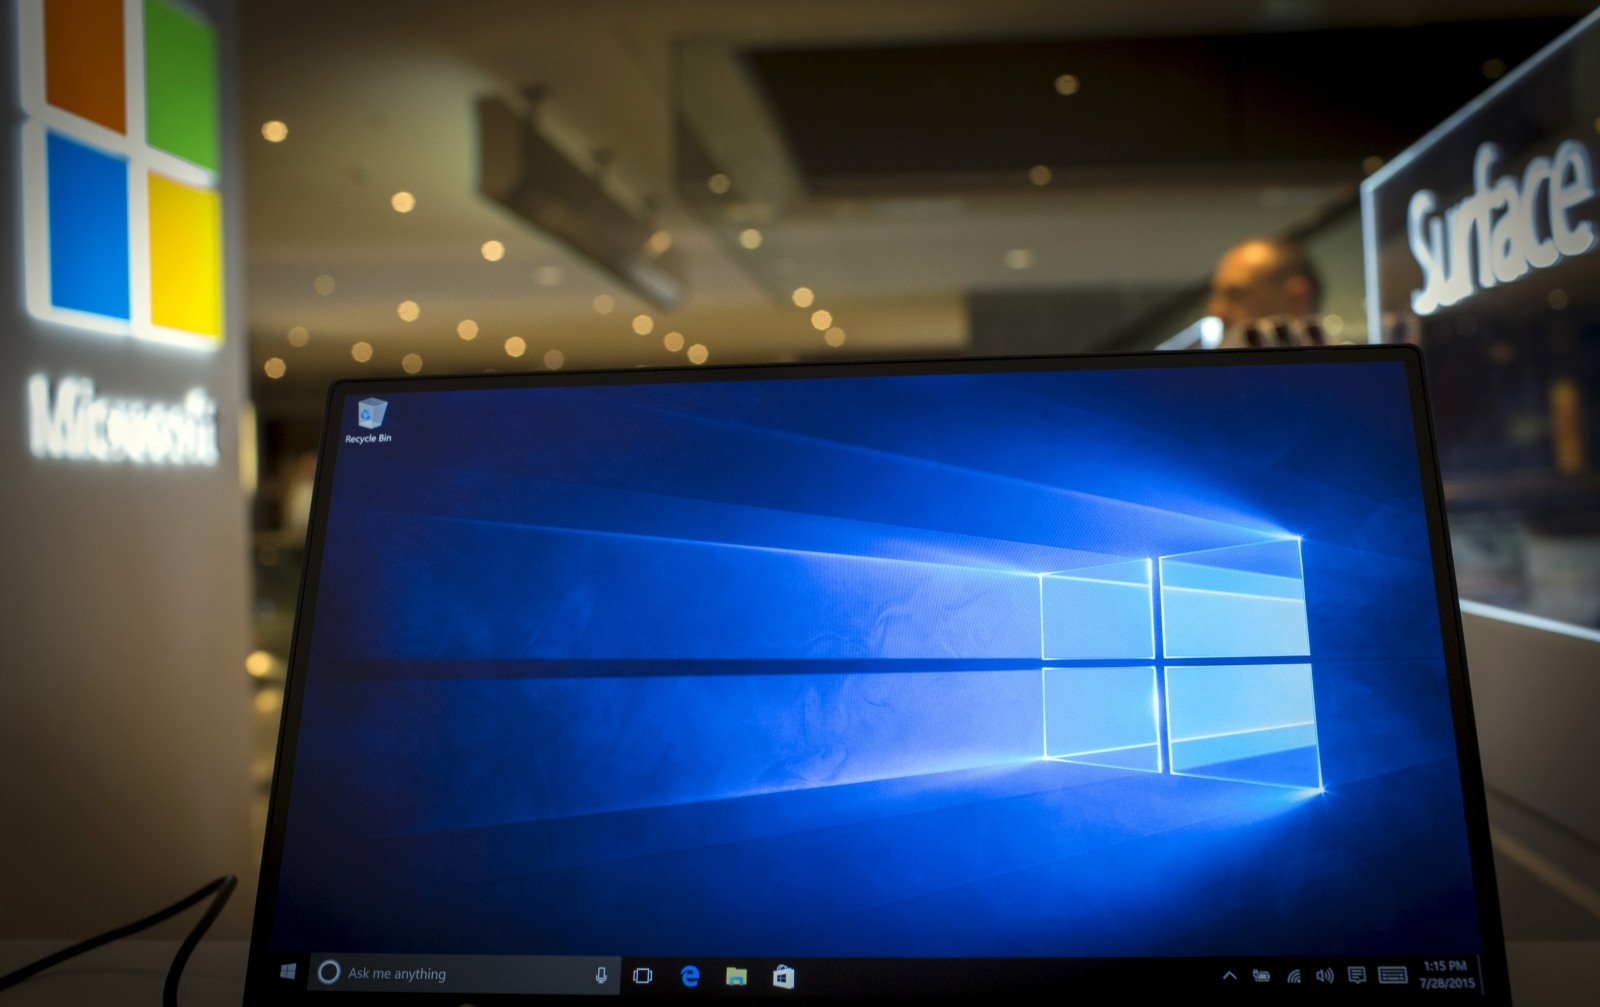 Windows 10 download message not coming up? How to check and force install